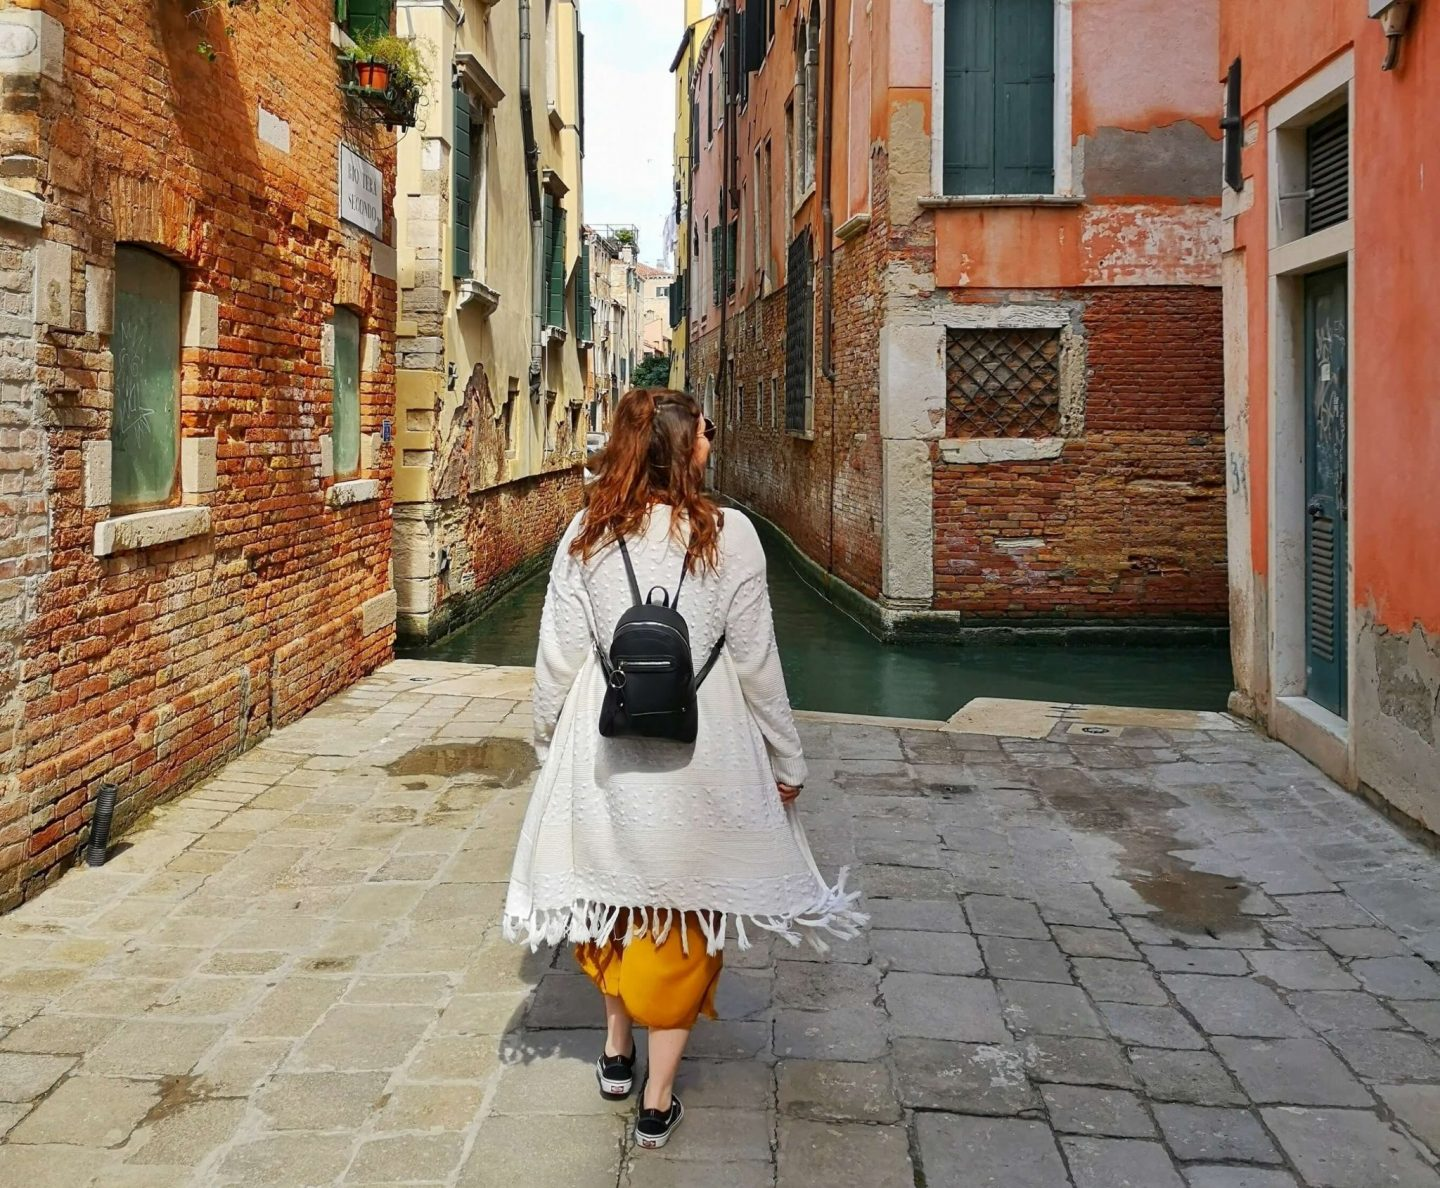 New Shades of Hippy - Anneka Nicholls - travel blog and green living - 24 Hours in Venice, Italy